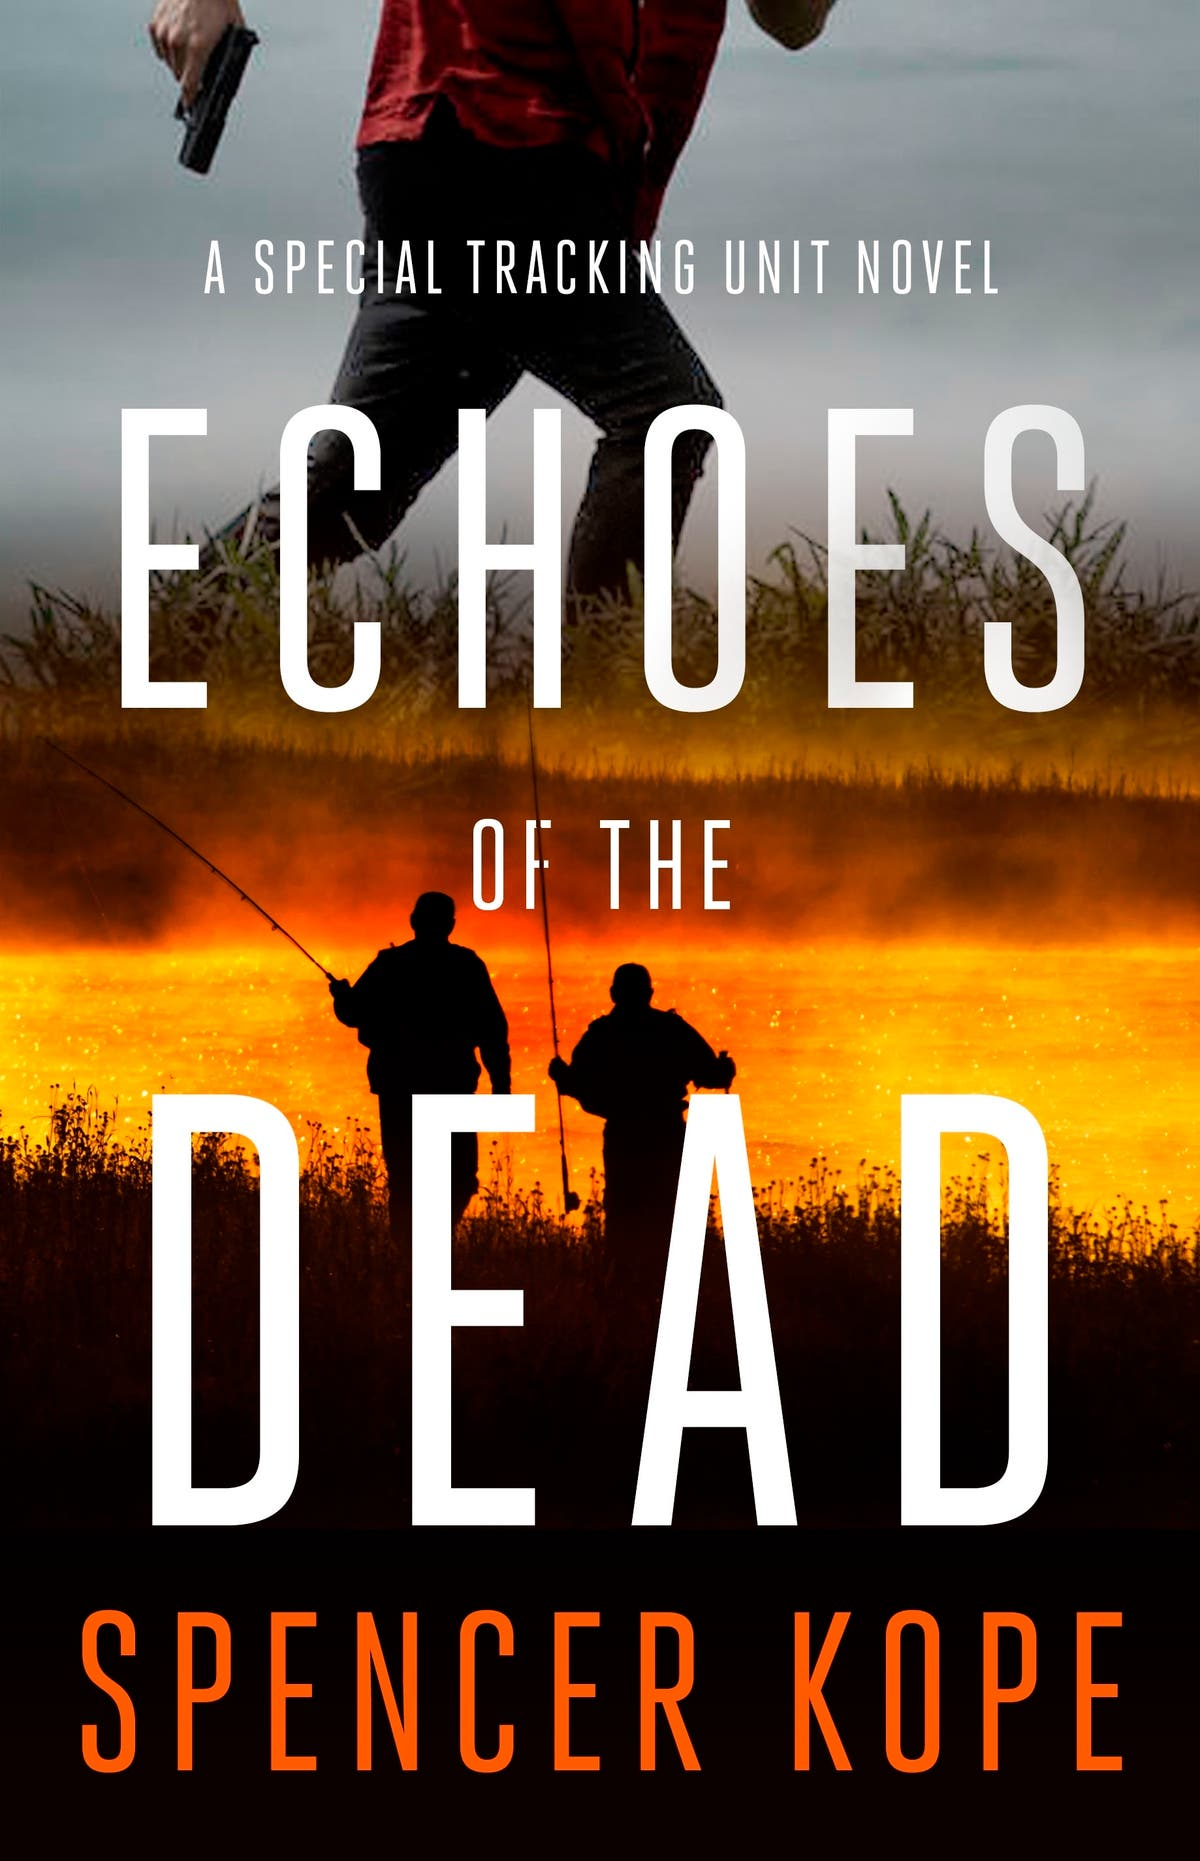 Análise: 'Echoes of the Dead' is a fast-paced thriller